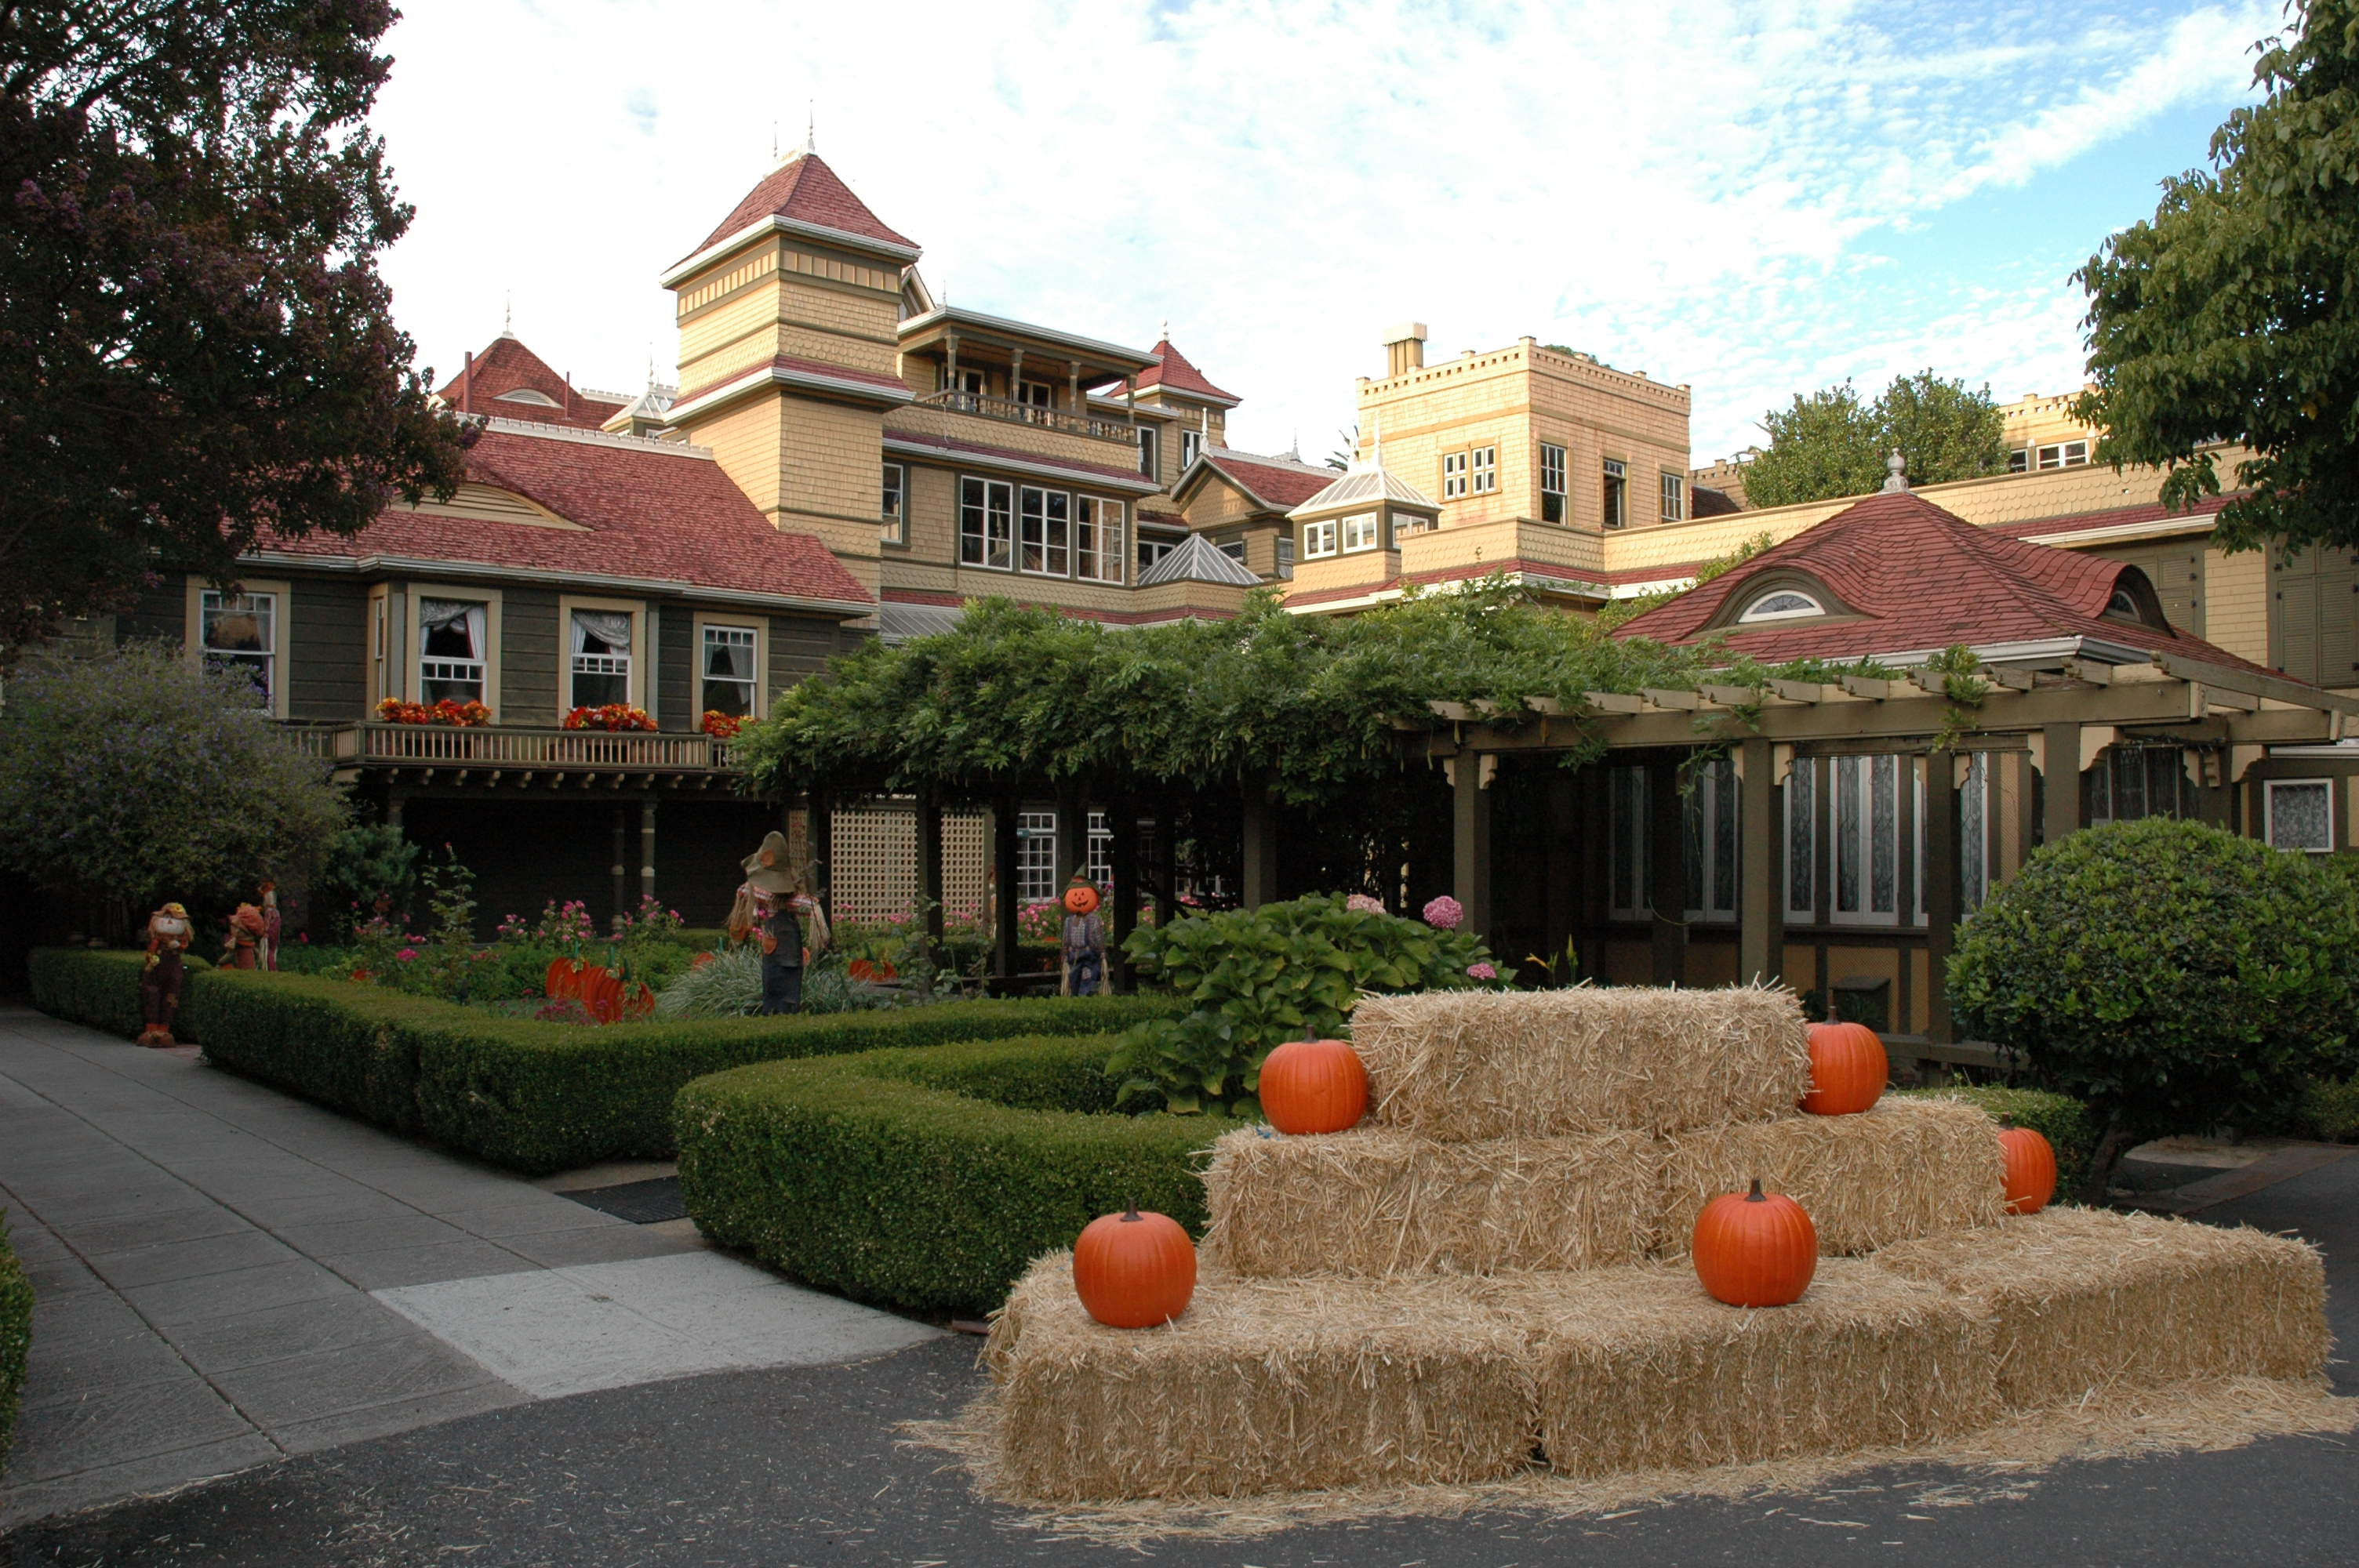 behind the thrills | winchester mystery house showcases the home's